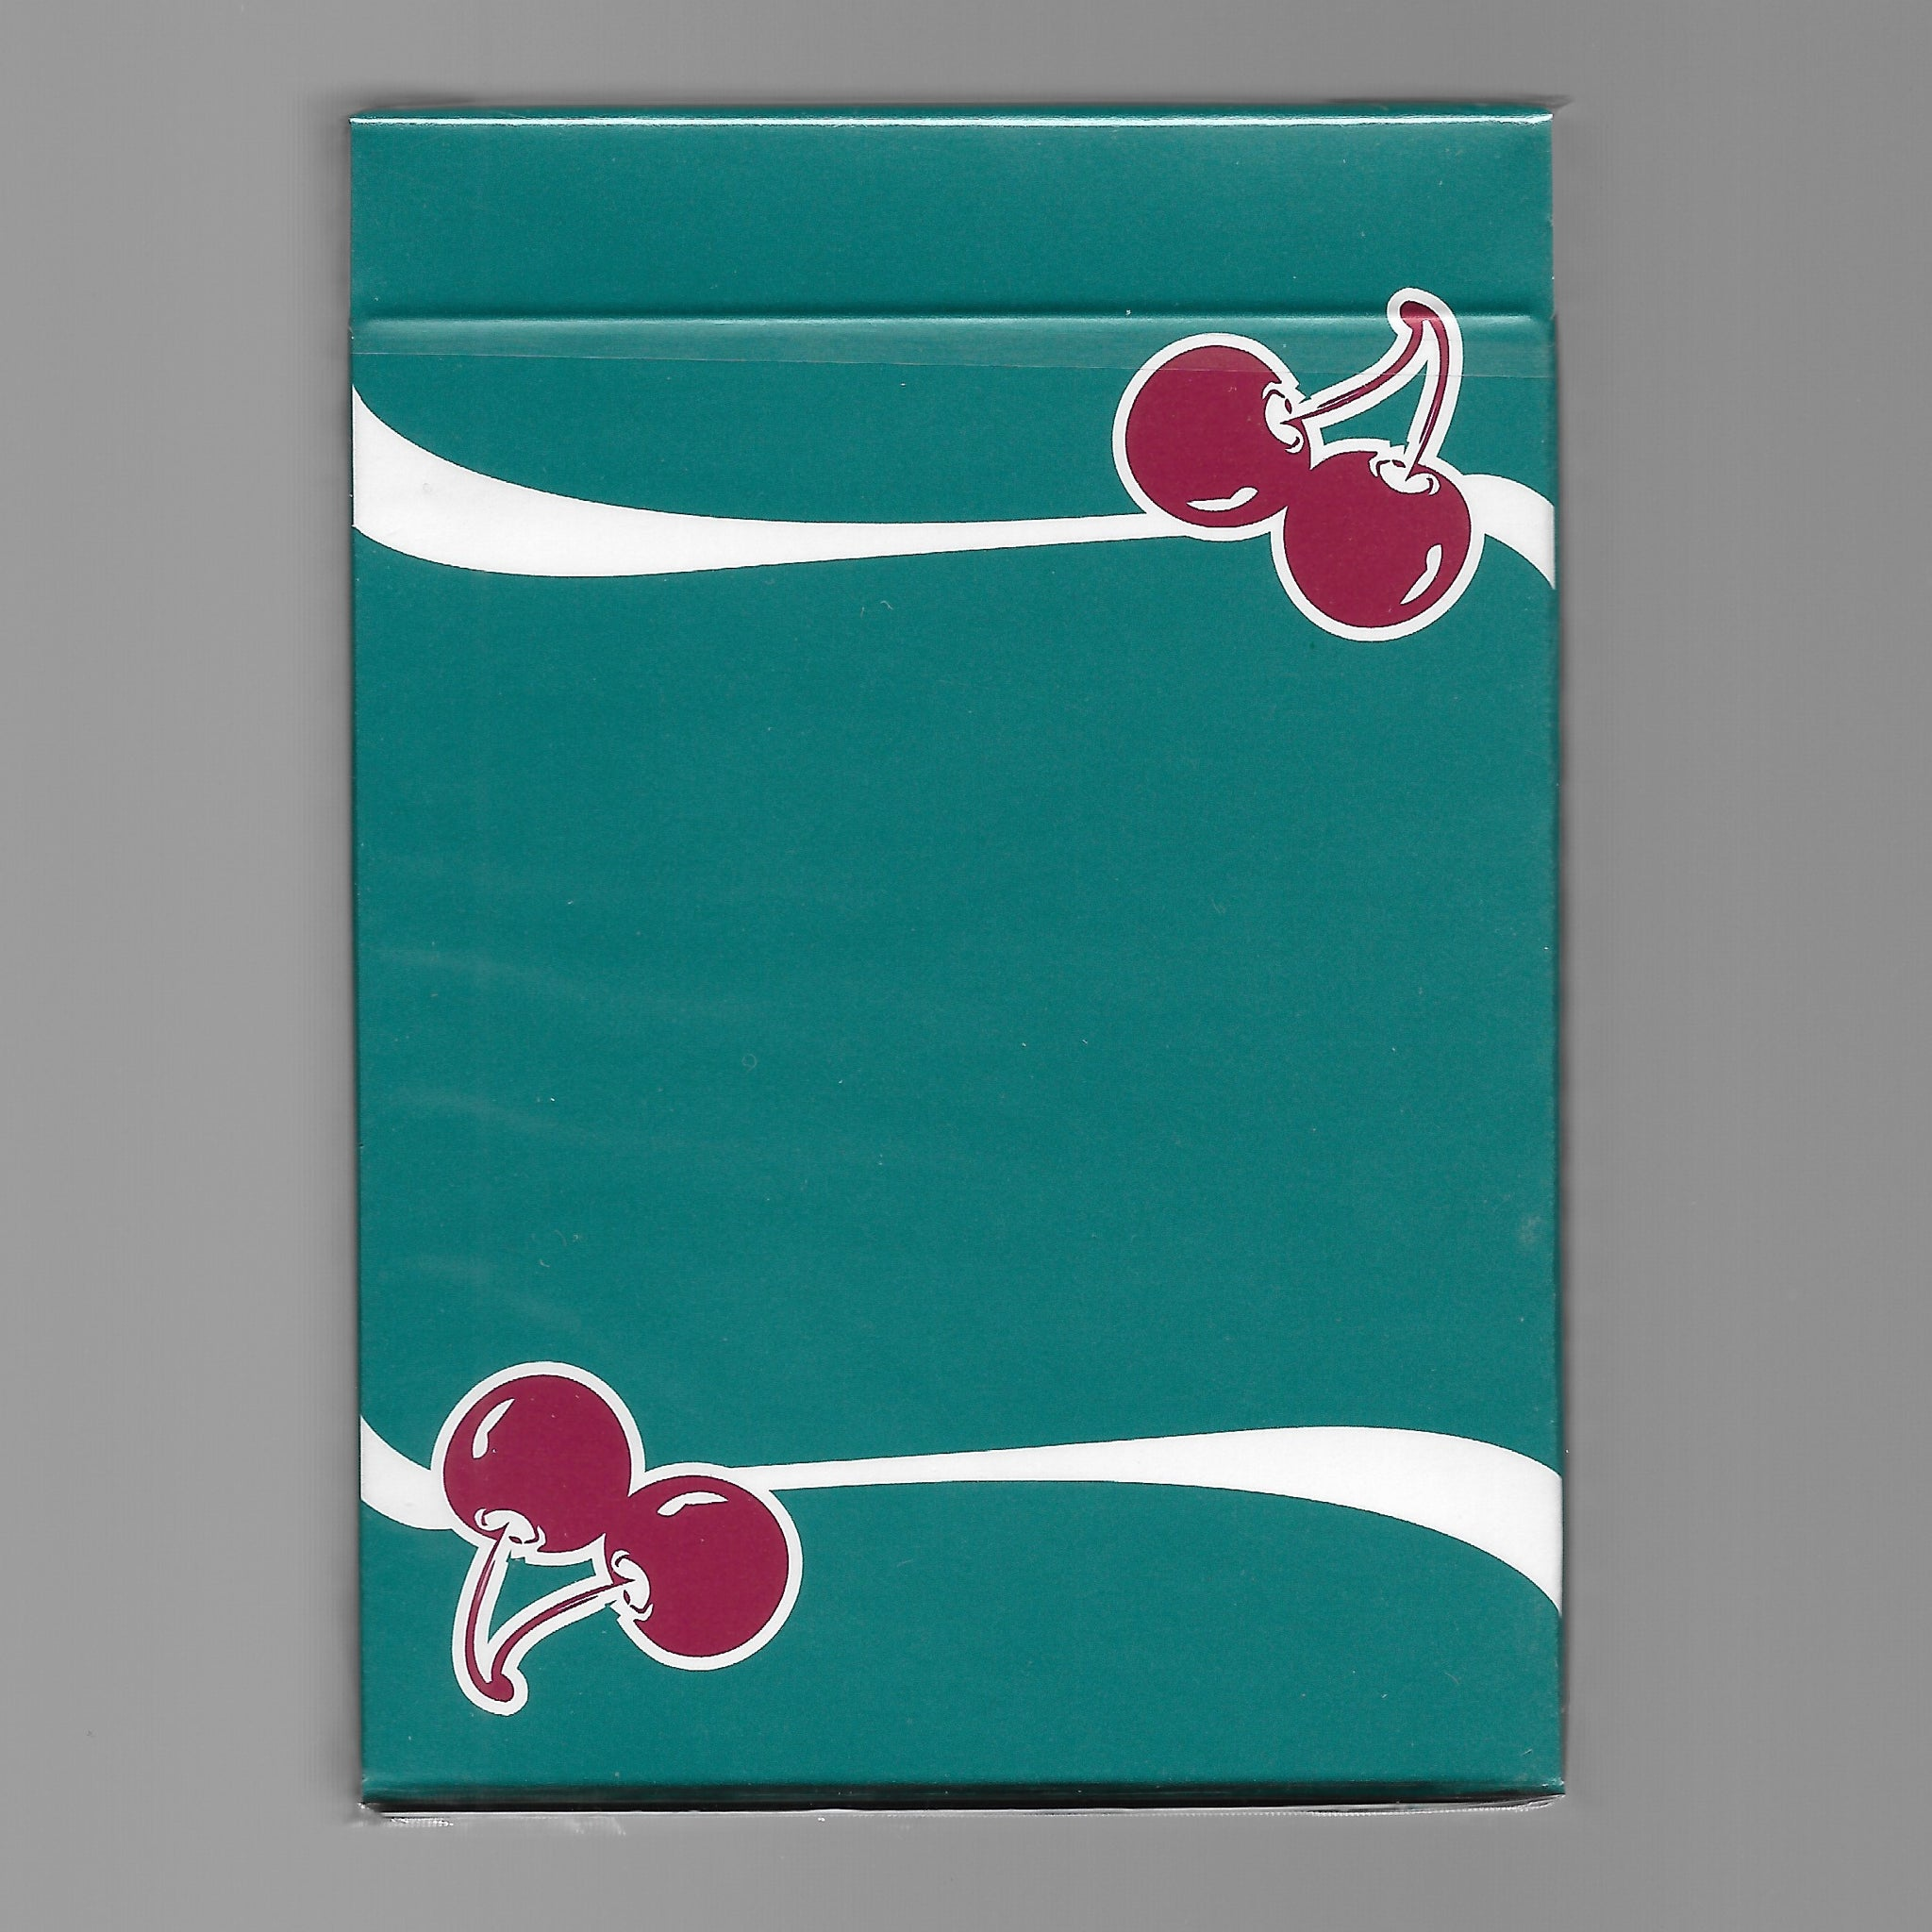 Cherry Casino (Tropicana Teal) [MORE ARRIVING 9/25]